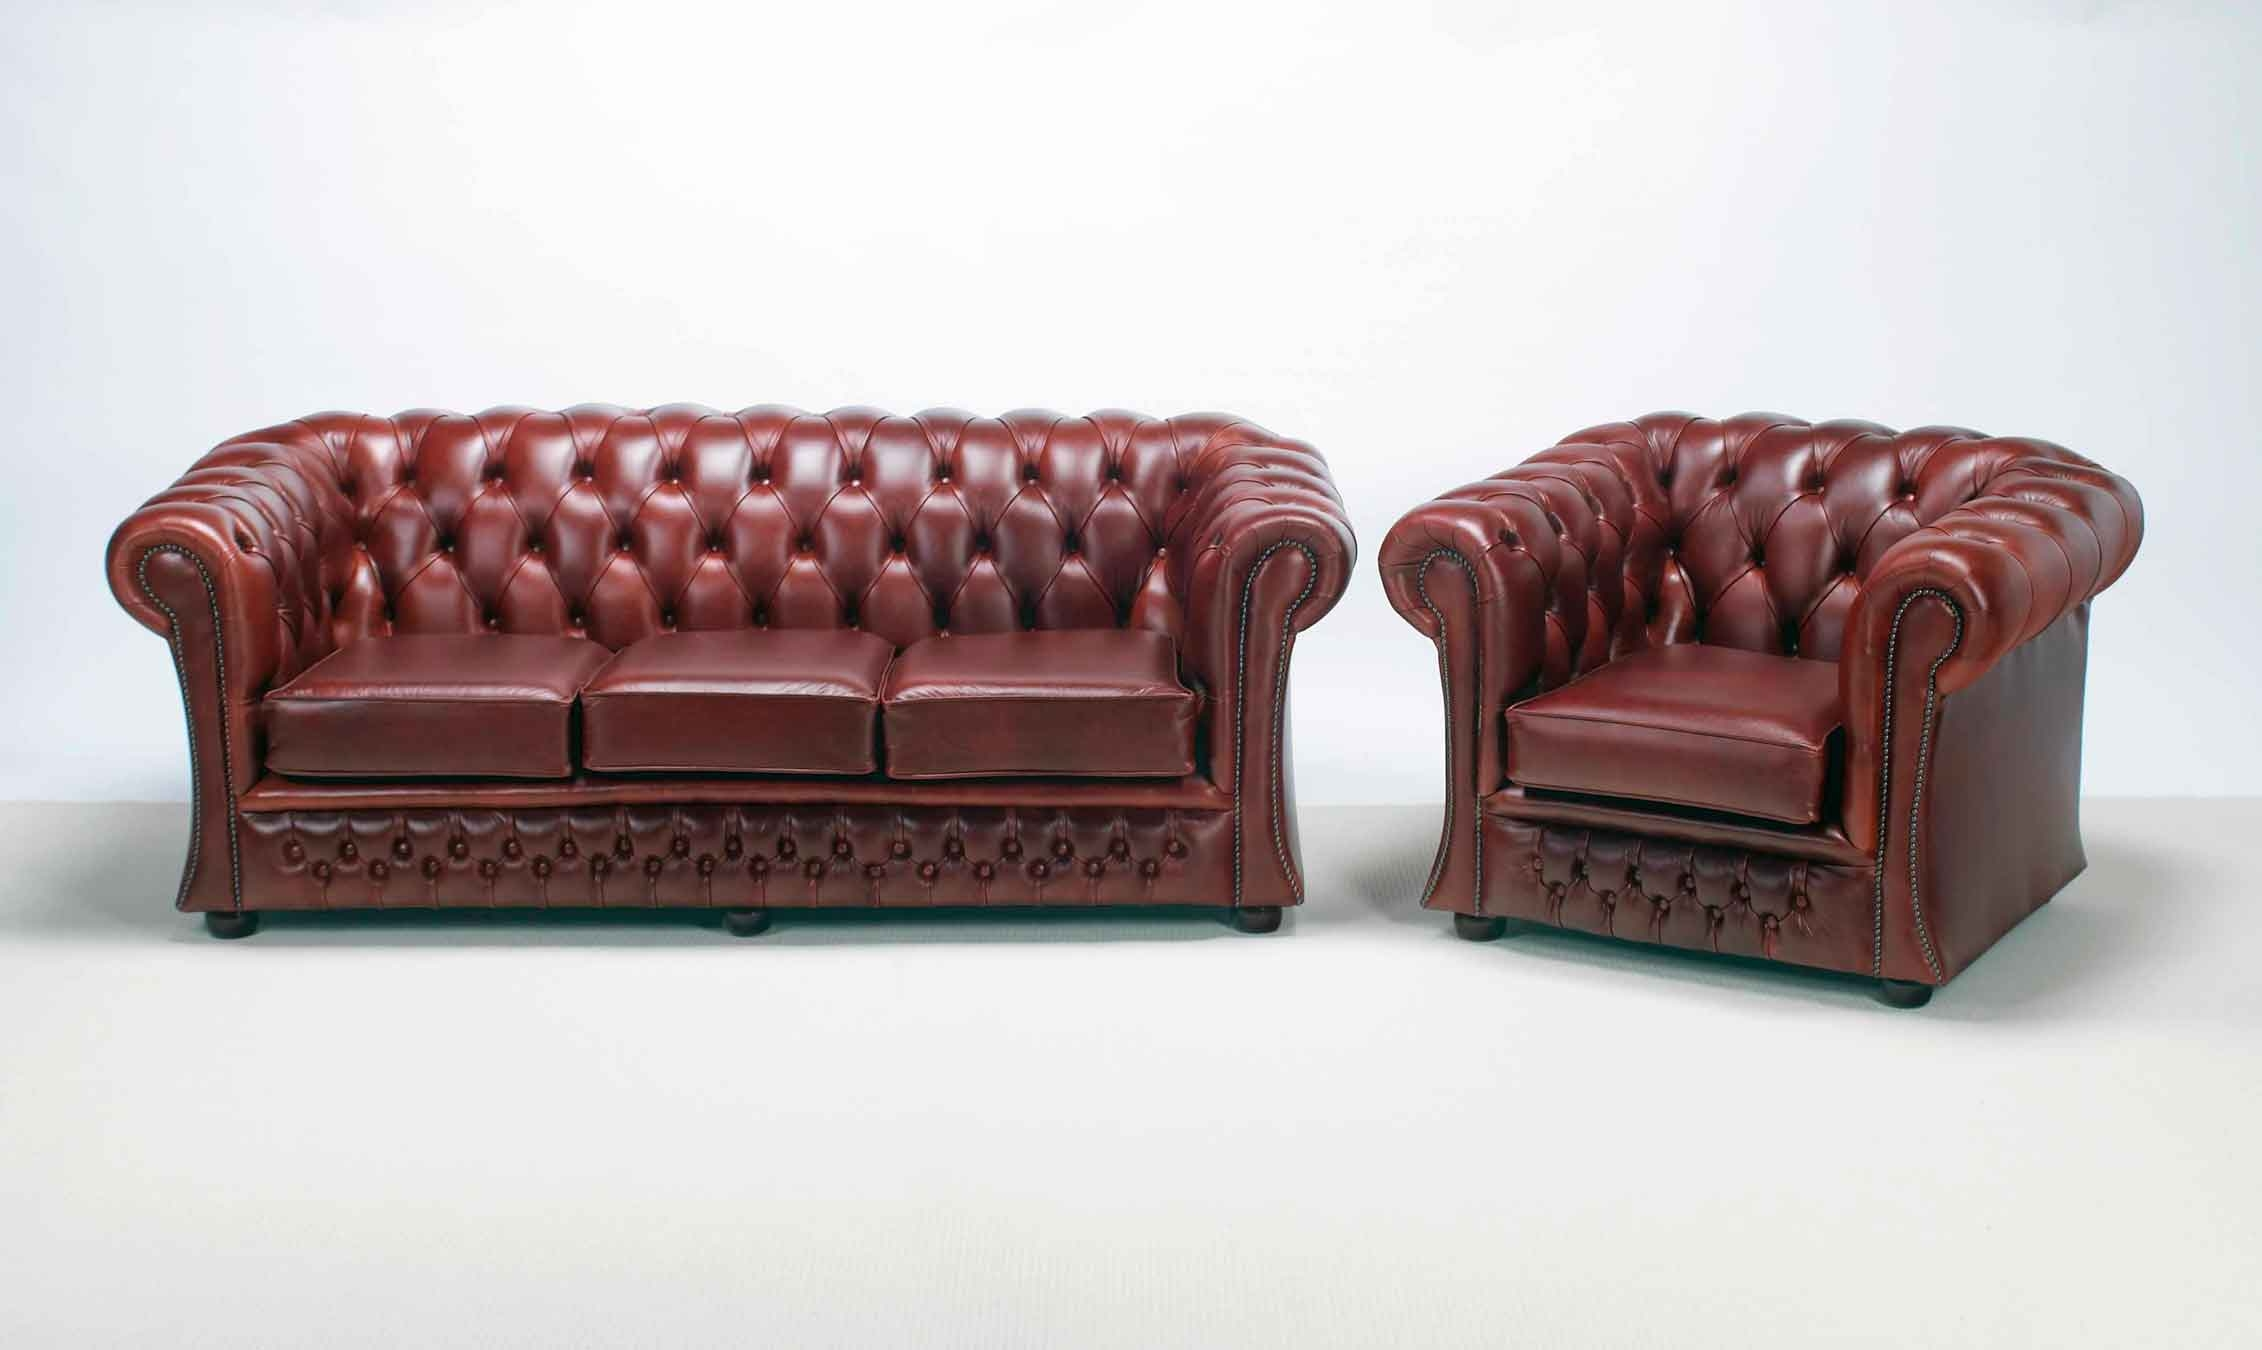 Furniture Have A Luxury Living Room With The Elegant Chesterfield Pertaining To Chesterfield Sofa And Chair (View 3 of 15)